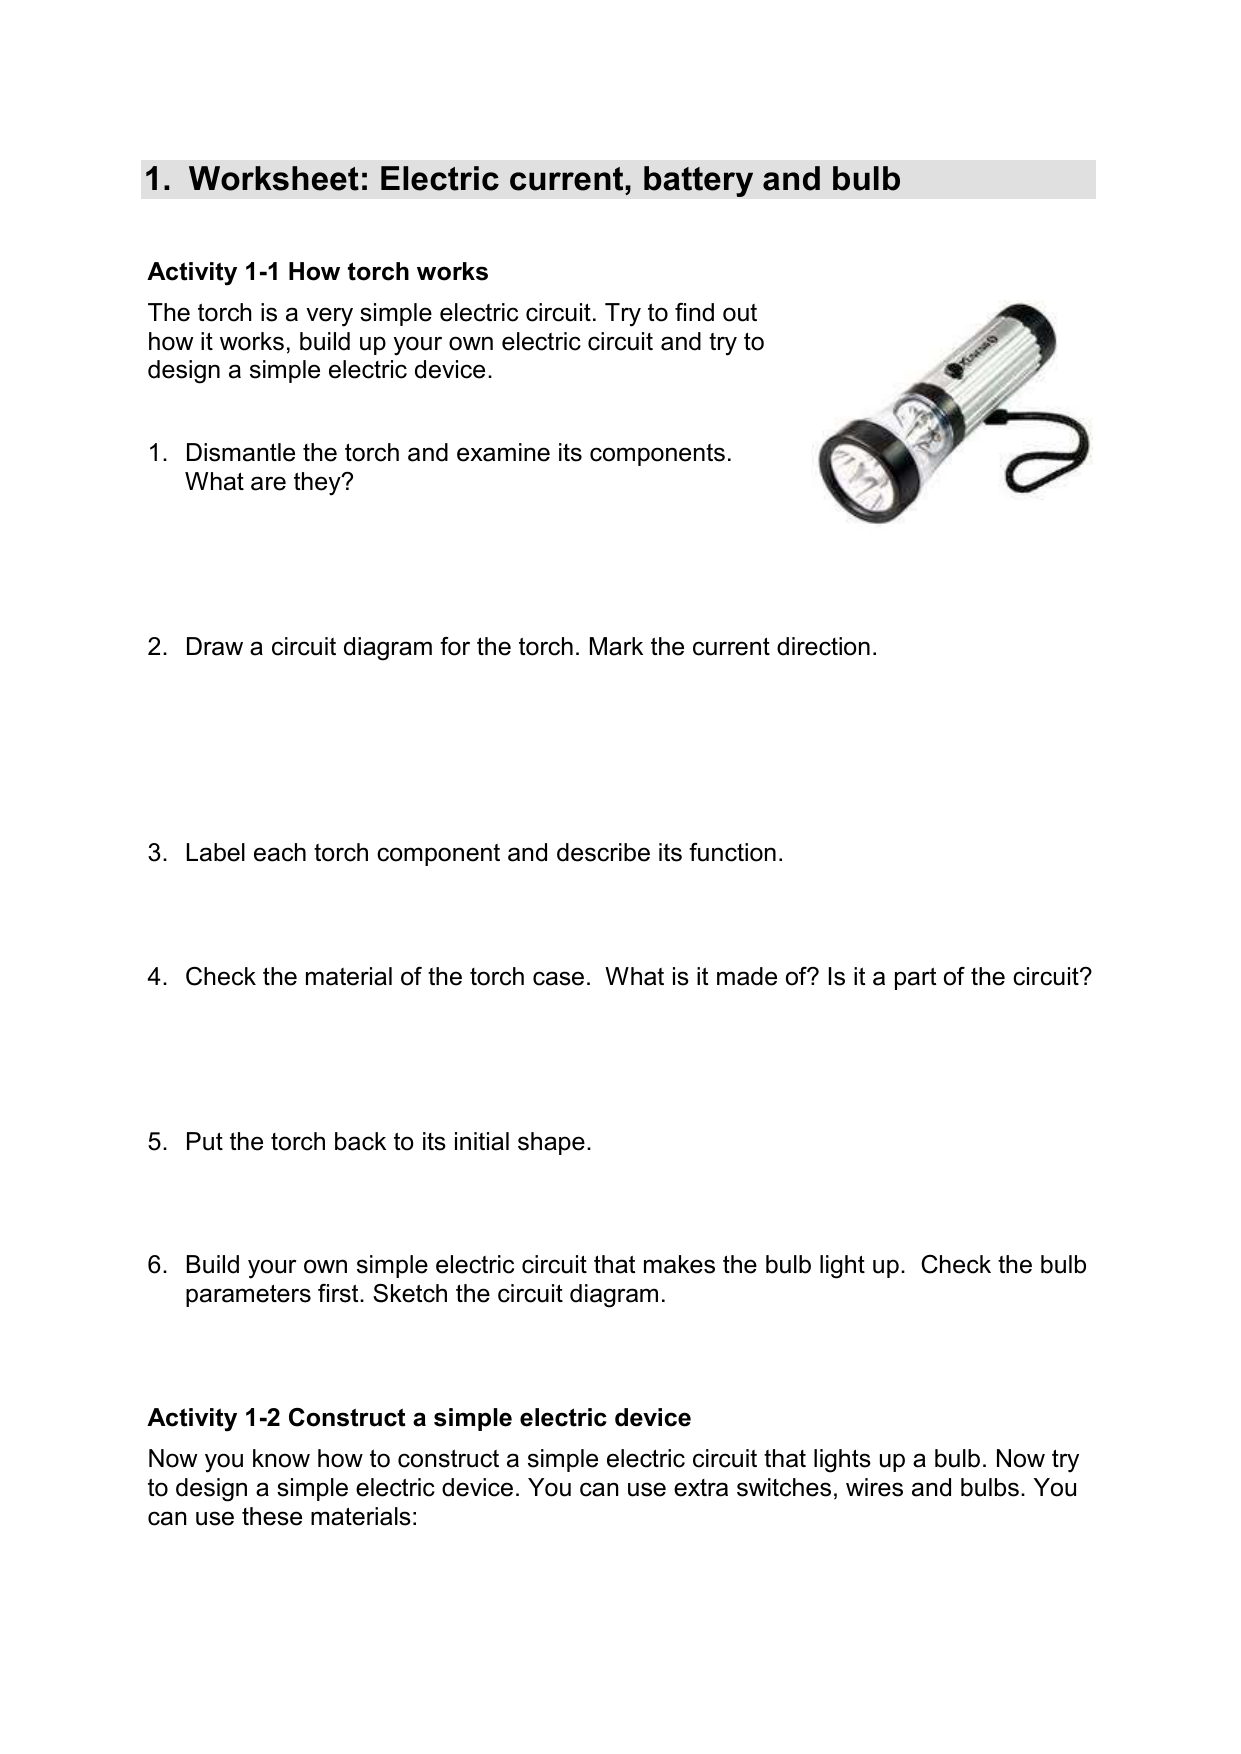 Worksheet: Electric current, battery and bulb on